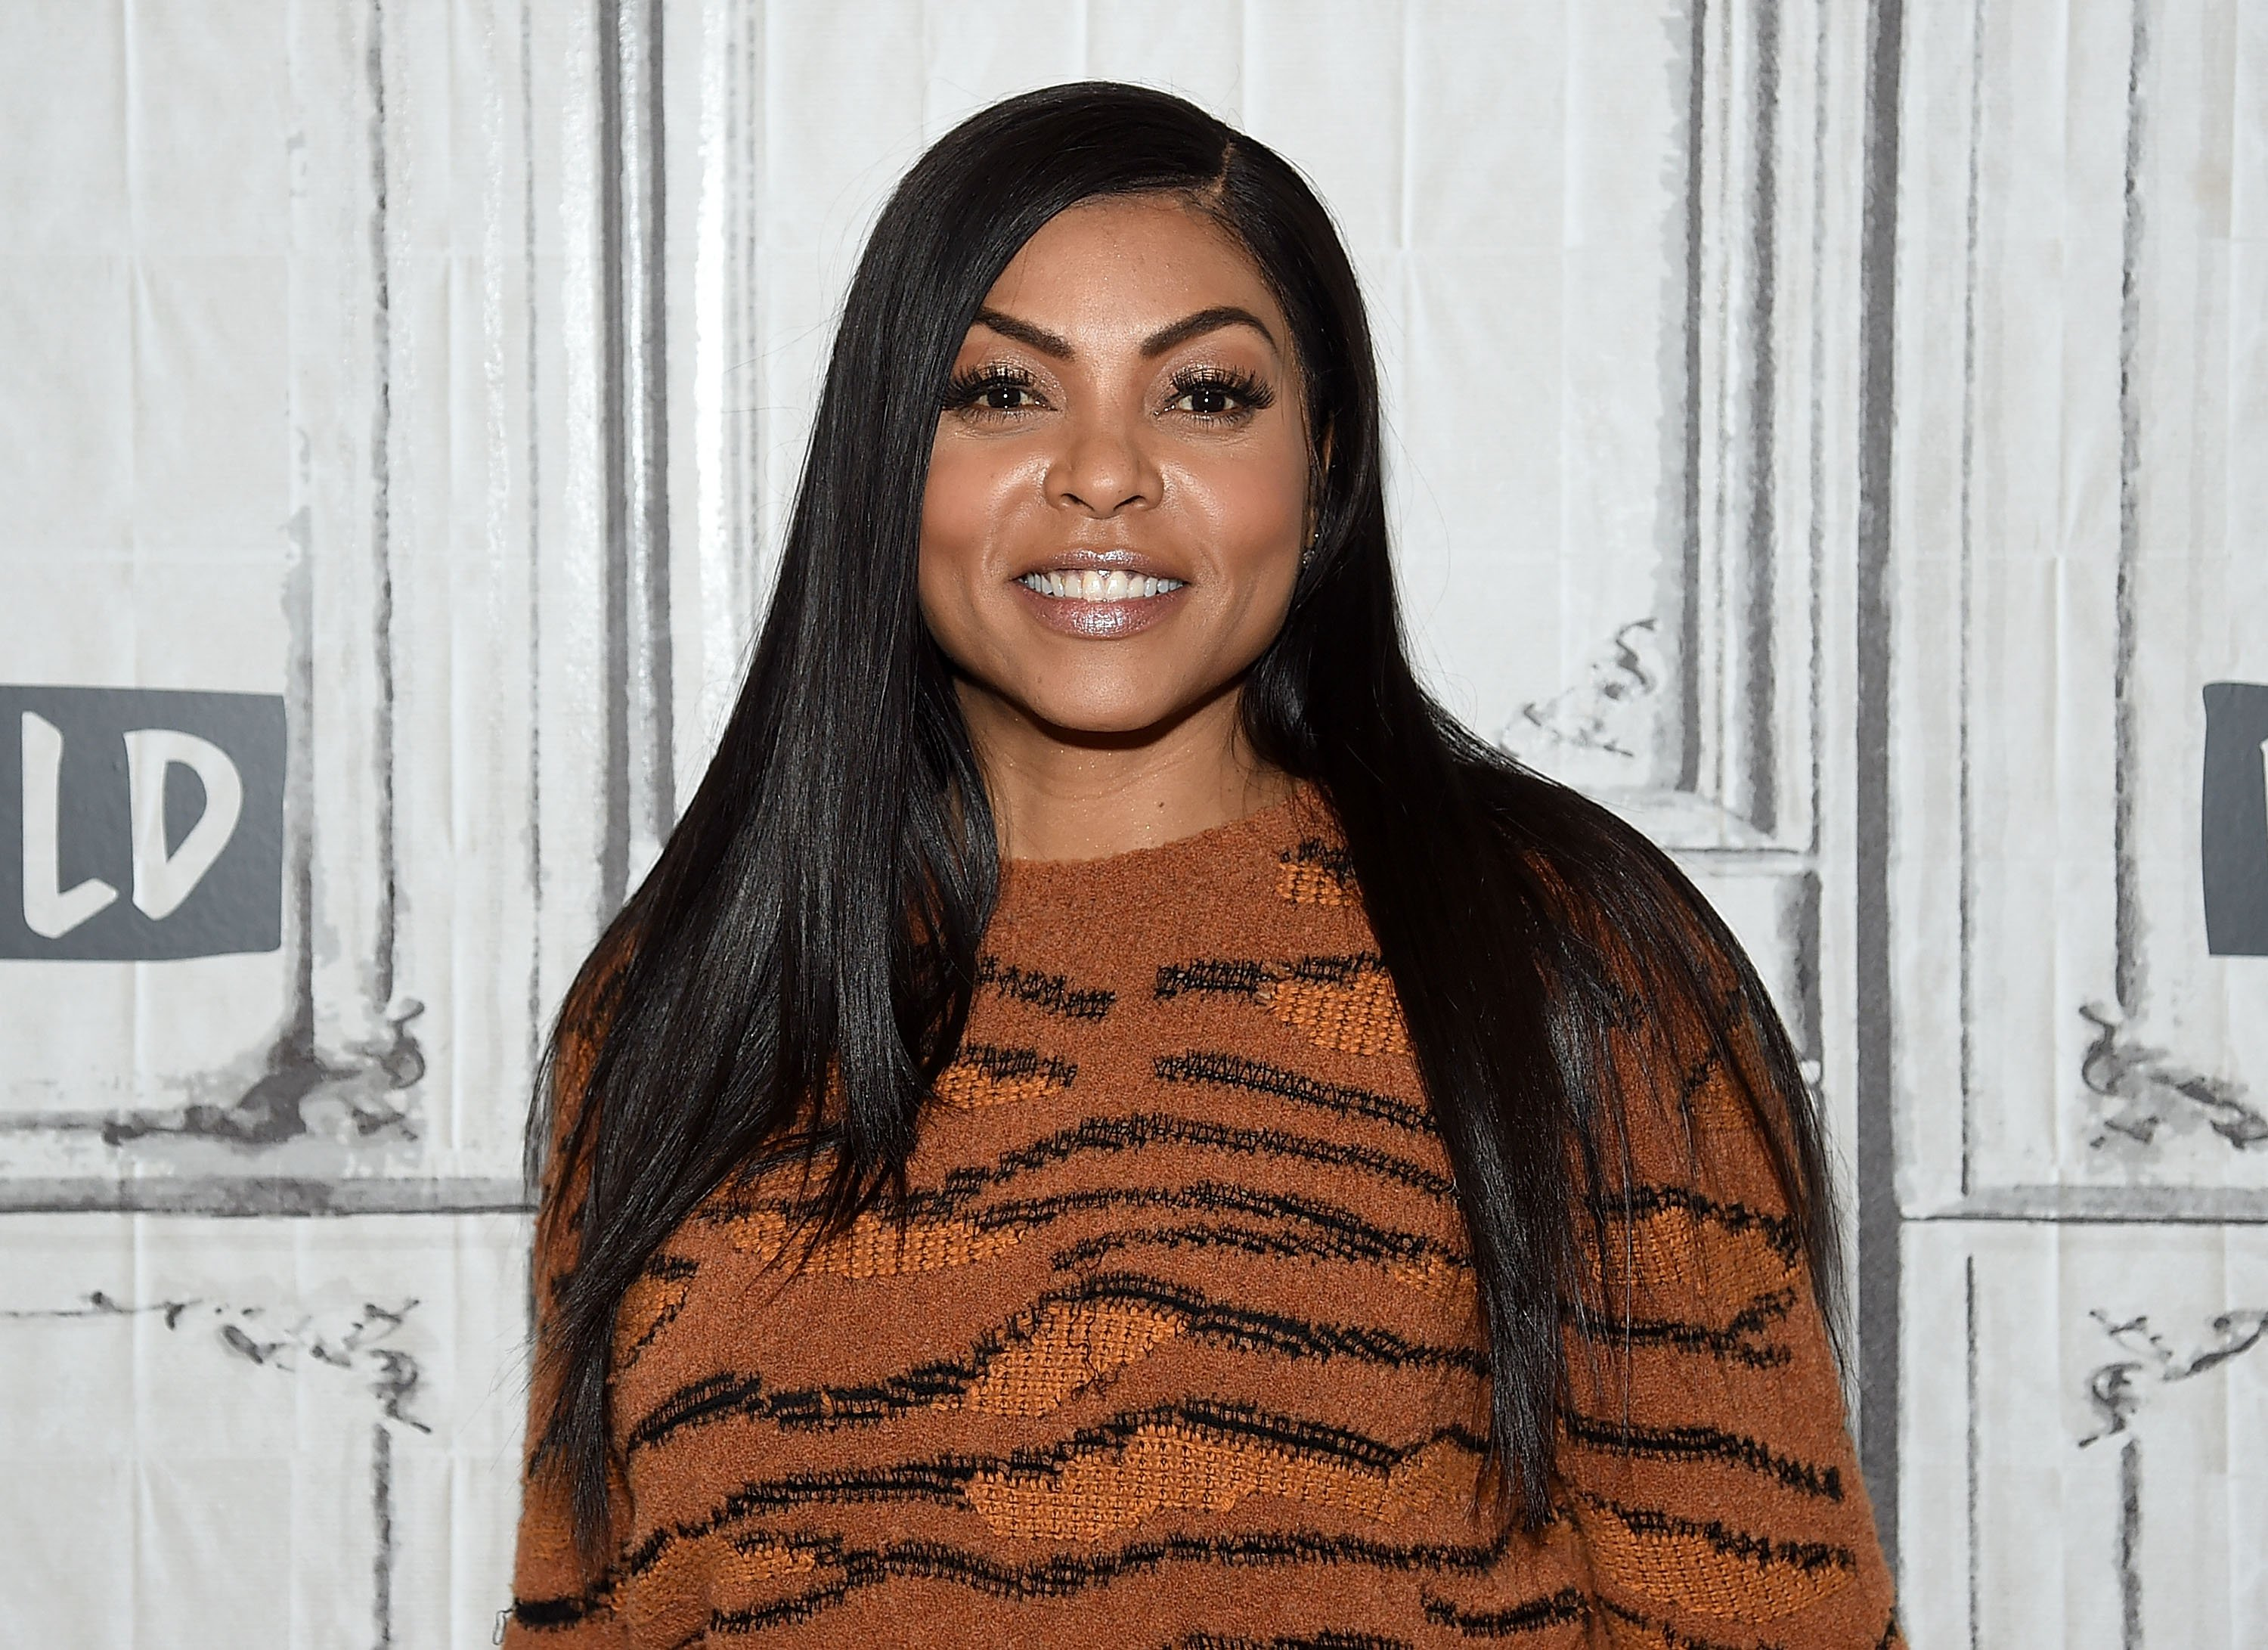 Taraji P. Henson at Build Studio on March 26, 2018 in New York City. | Photo: Getty Images